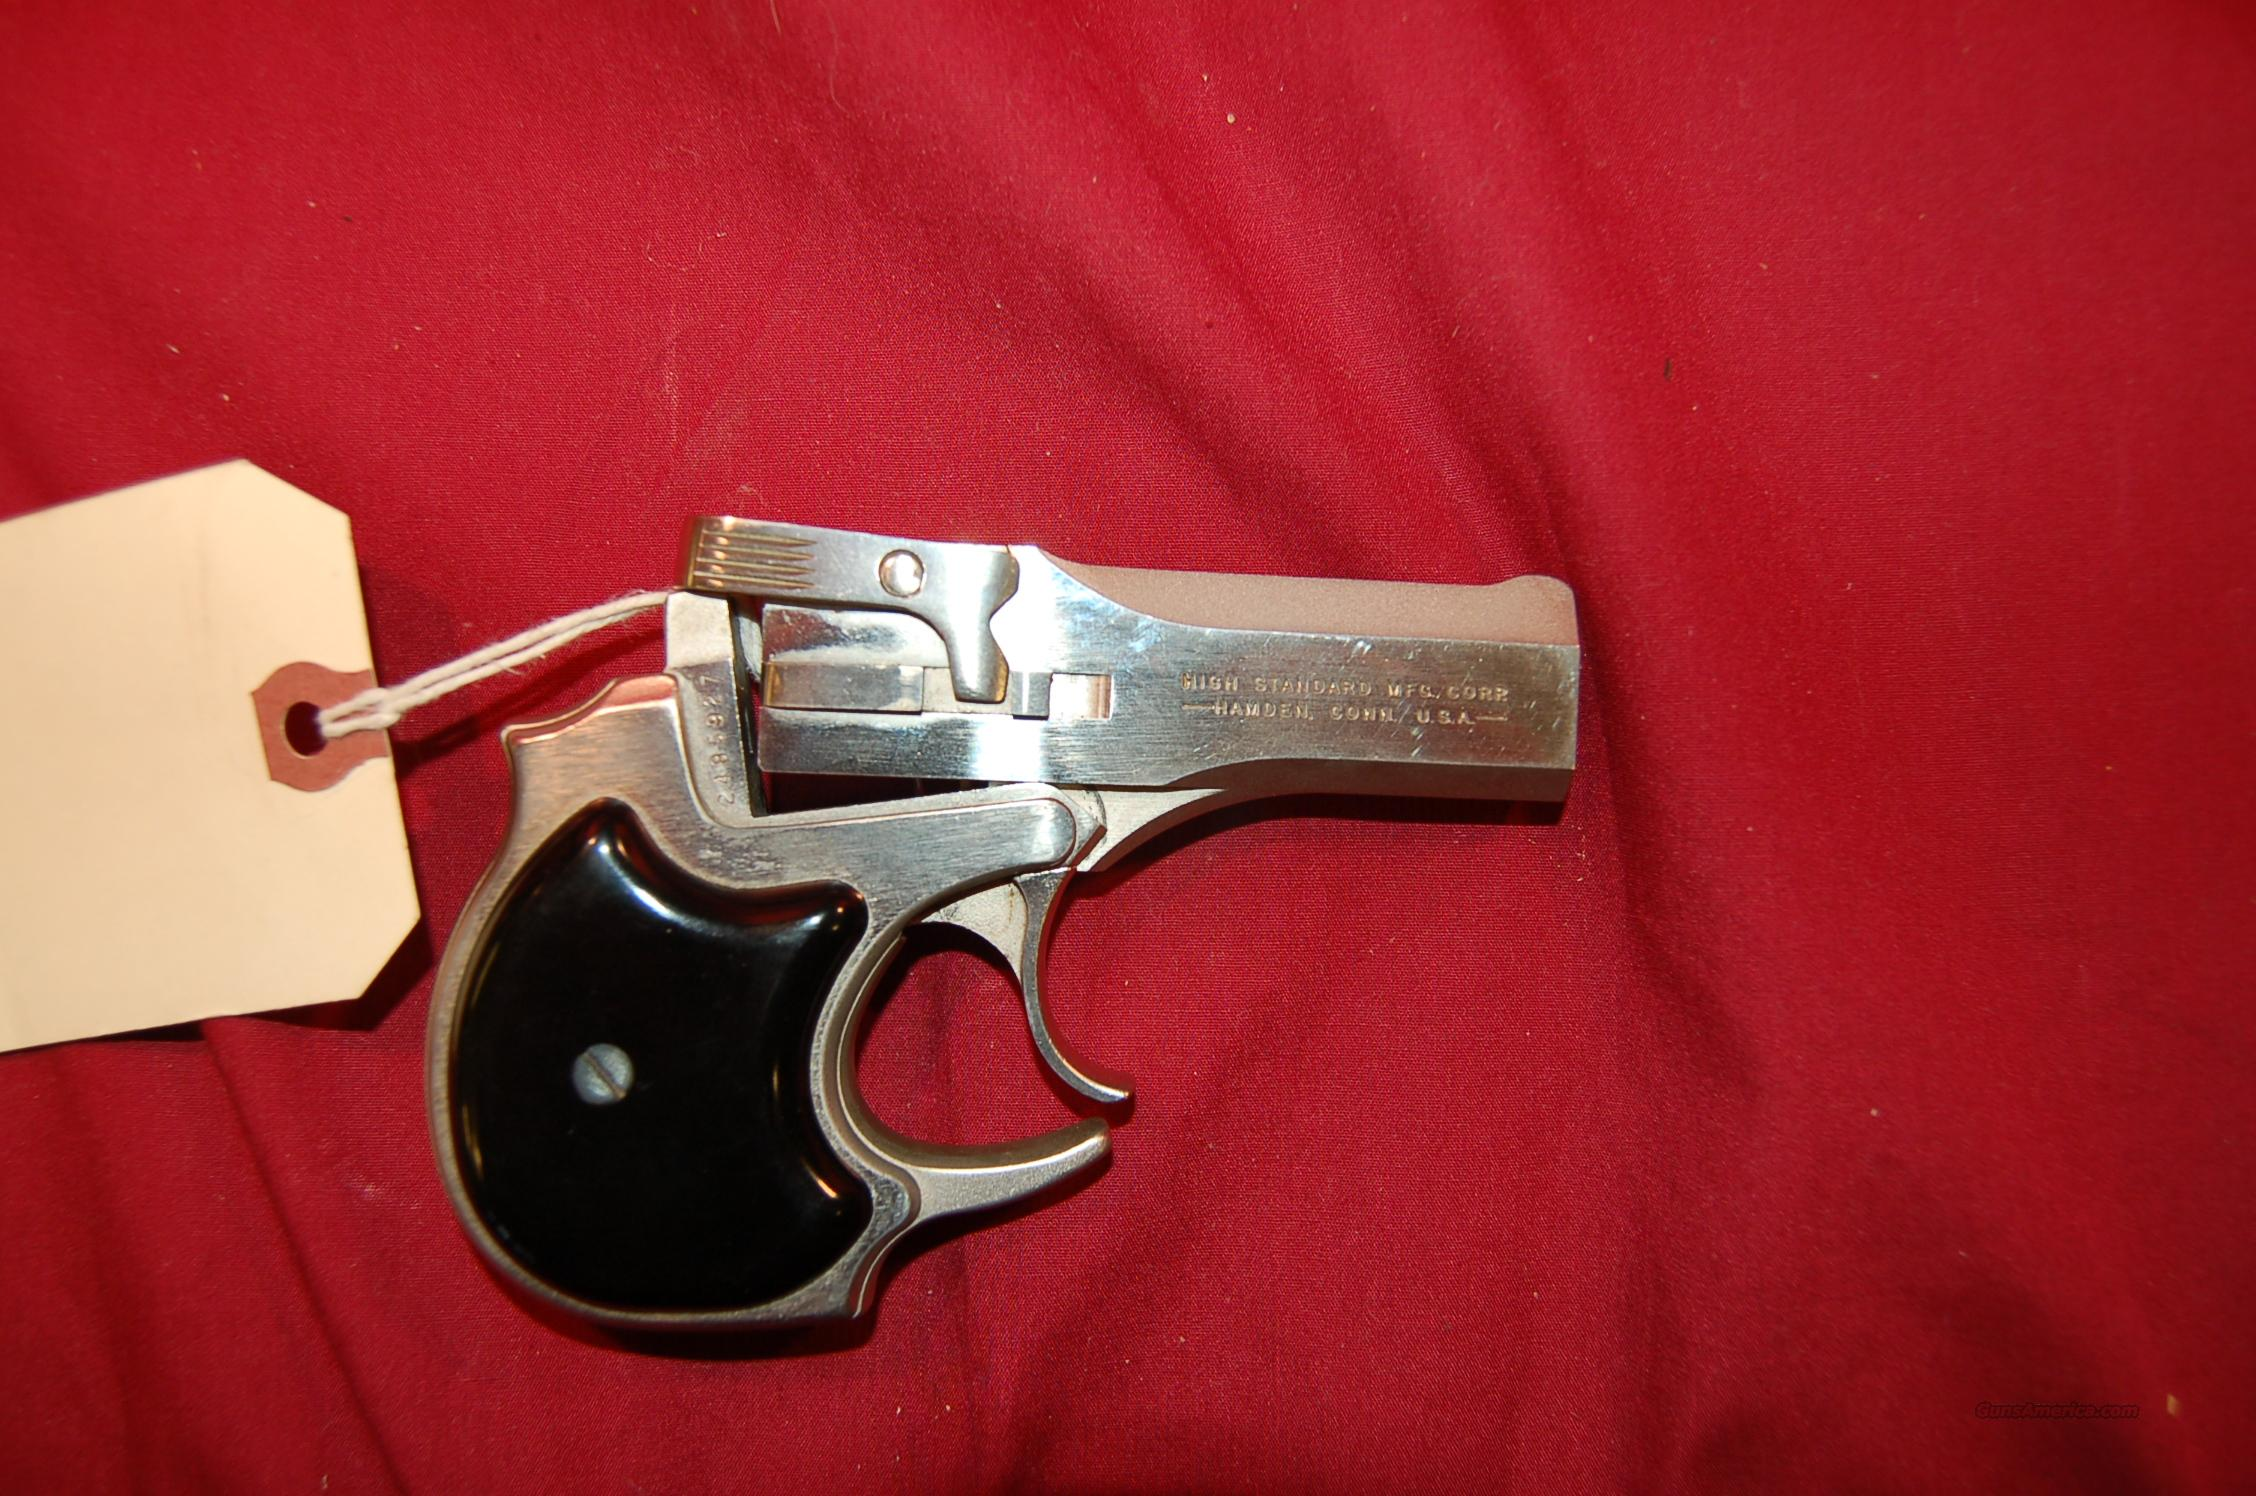 High Standard 3rd Model Derringer .22 mag  Guns > Pistols > High Standard Pistols